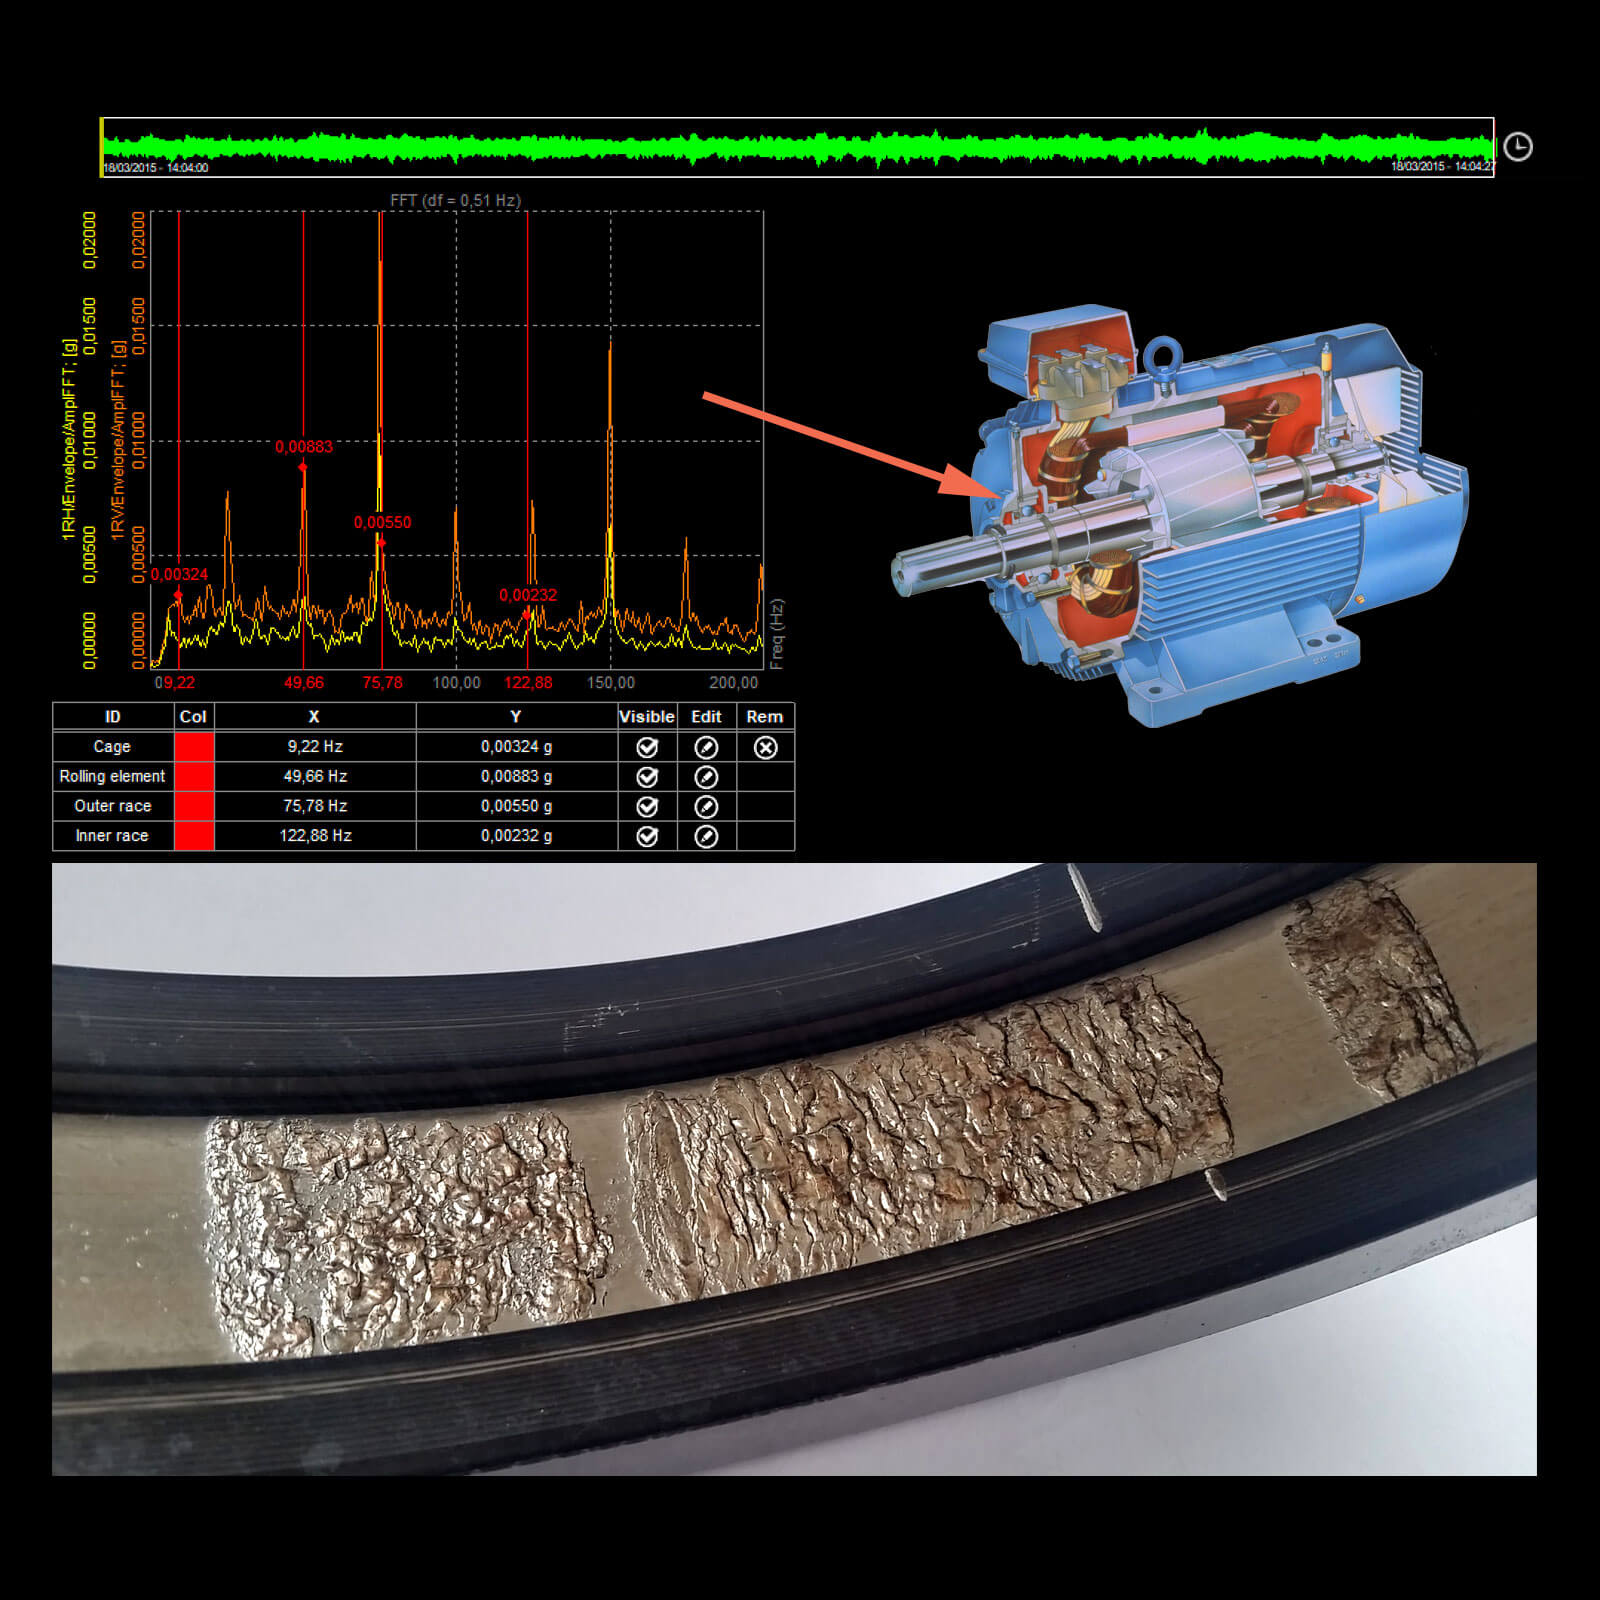 Bearing Fault Detection